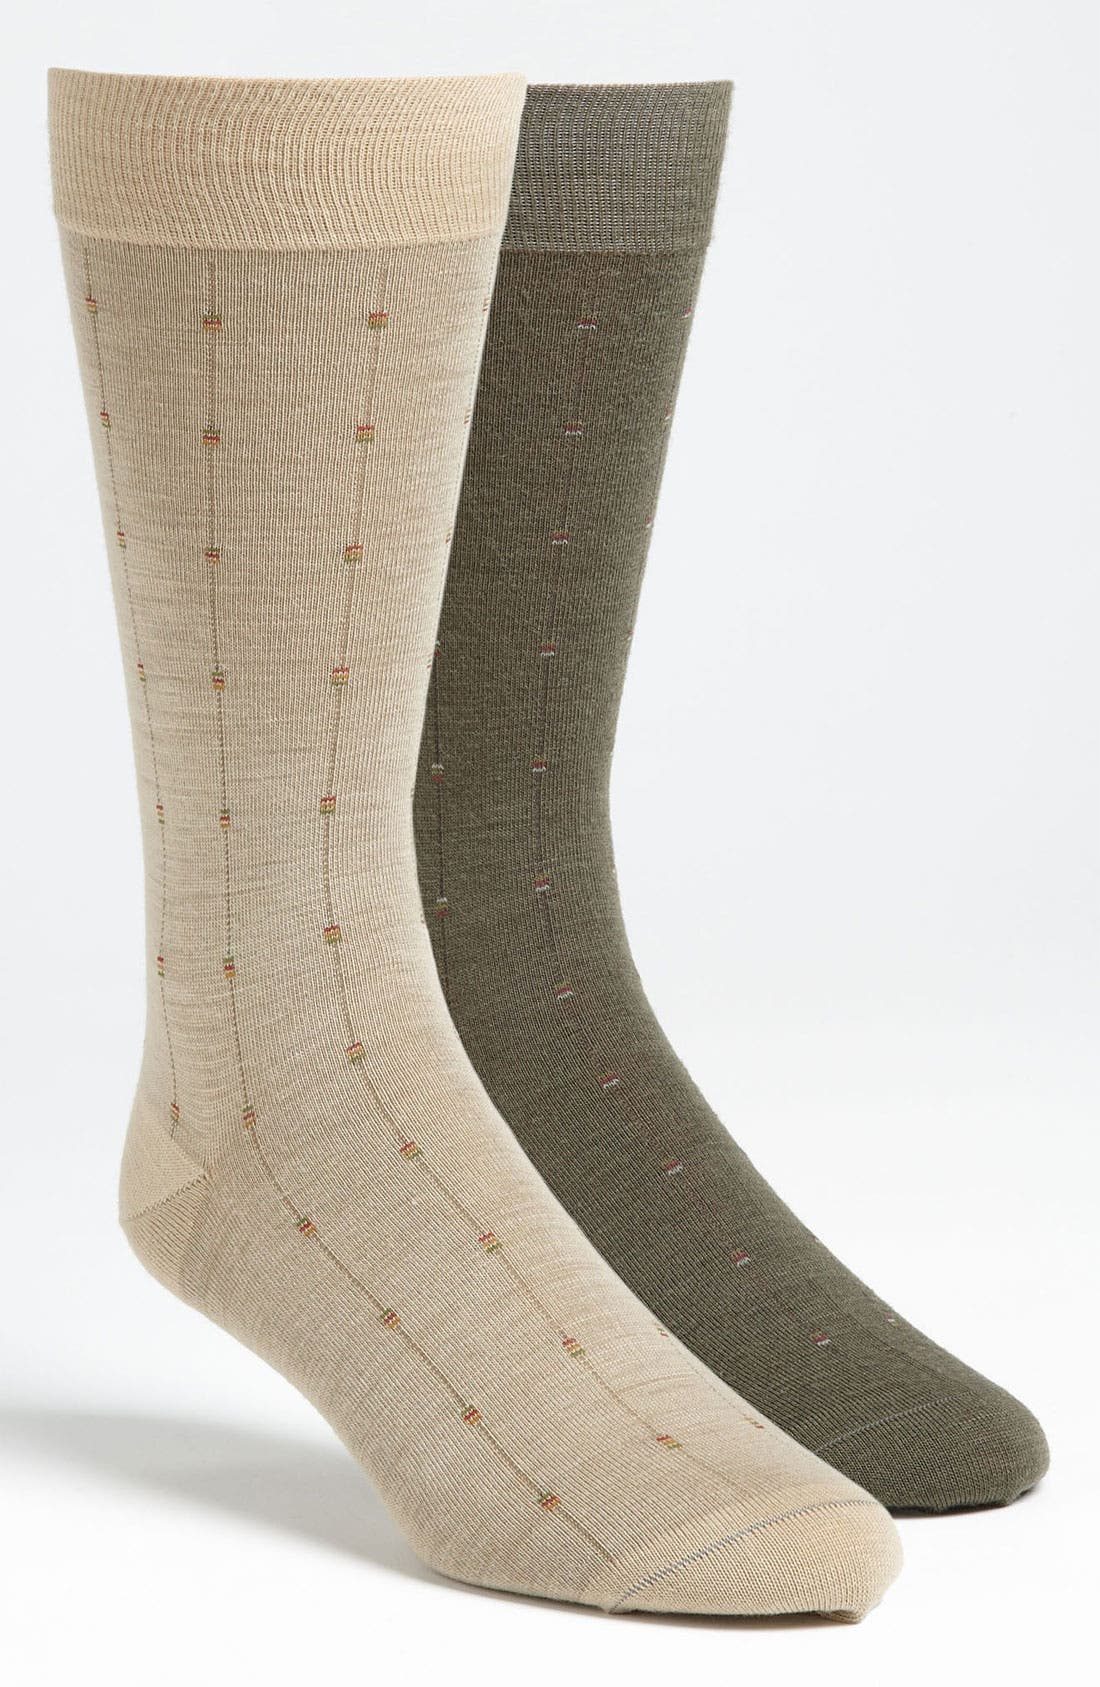 Main Image - Pantherella 'Bellringer' Socks (2-Pack)